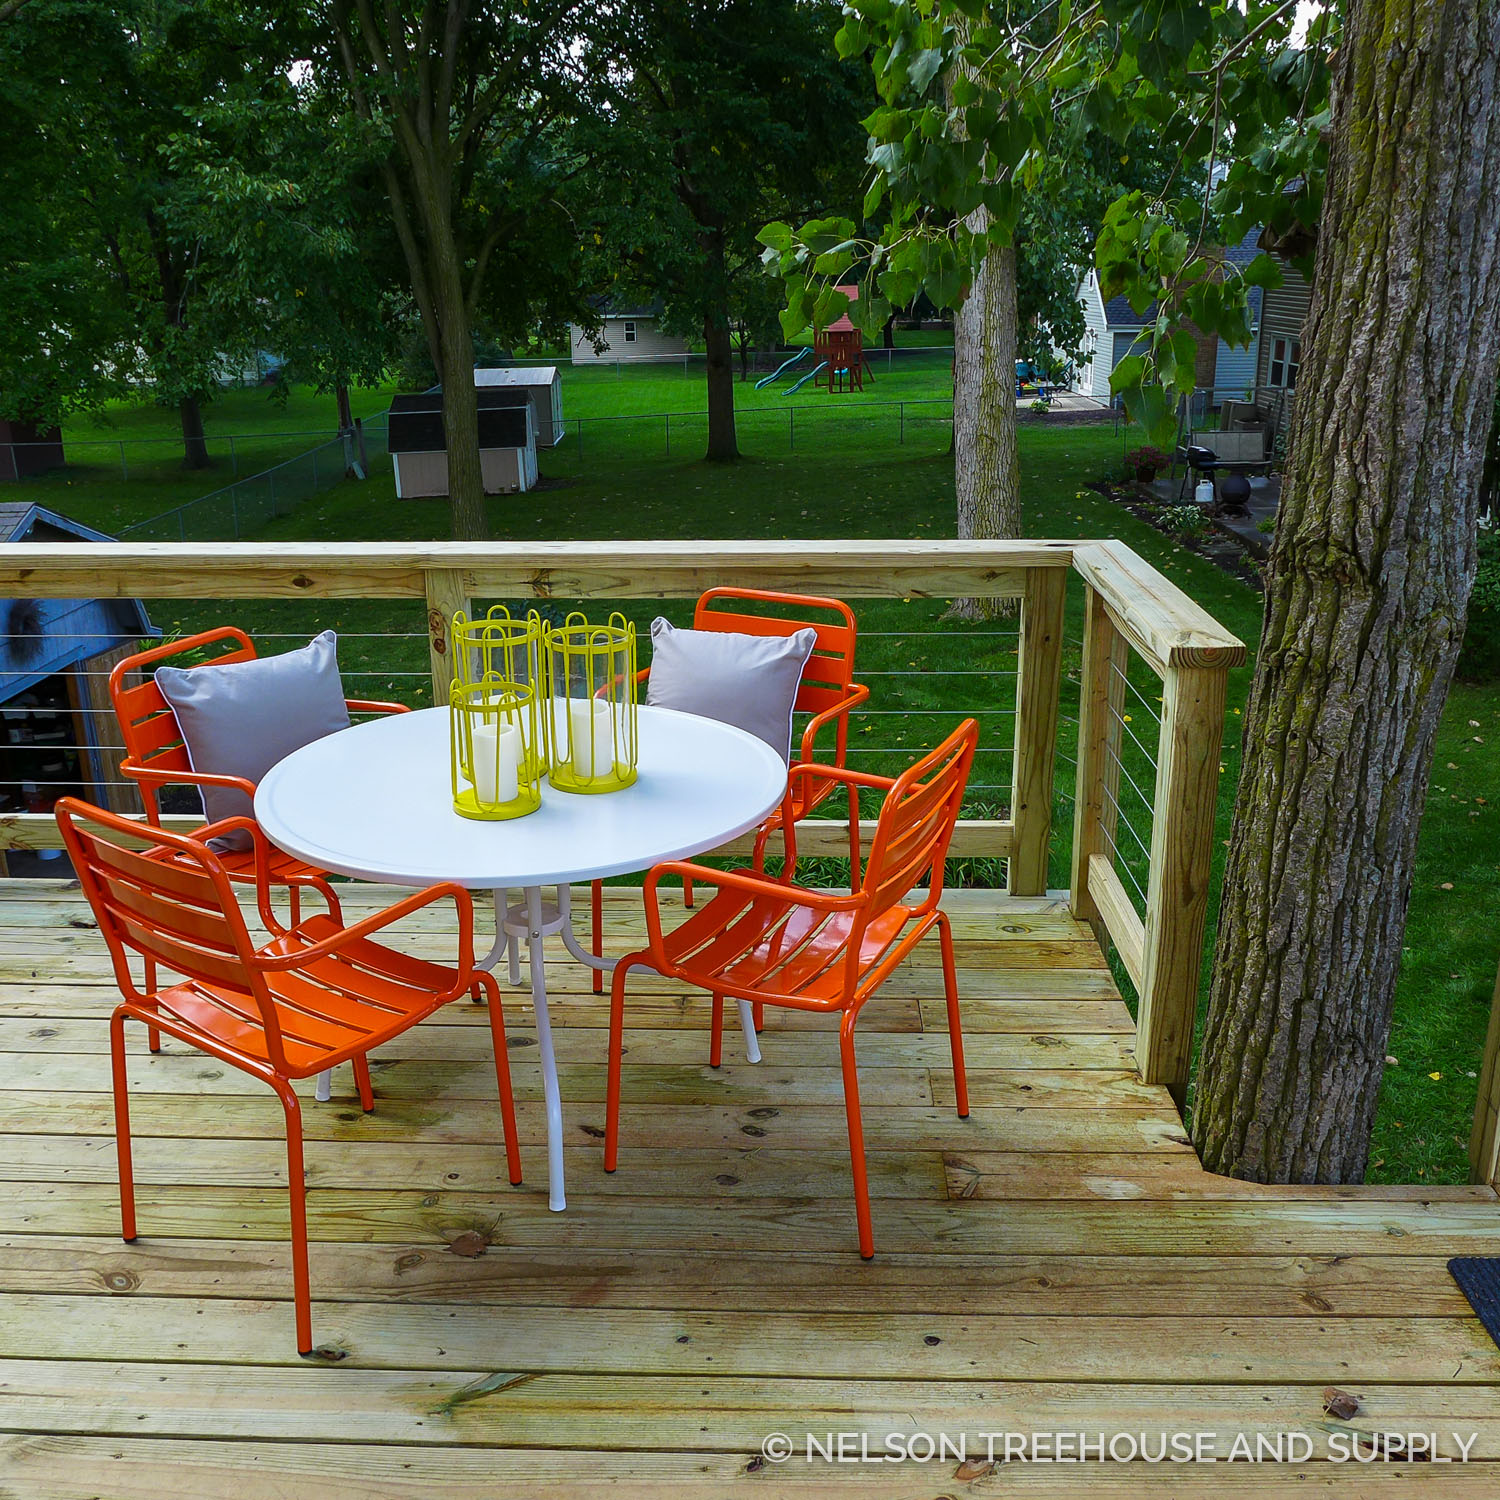 Christina sought budget-friendly, cheerful, modern-looking pieces for the Smith's treehouse. She found most of the outdoor furniture at Target, Overstock.com, and HomeGoods.